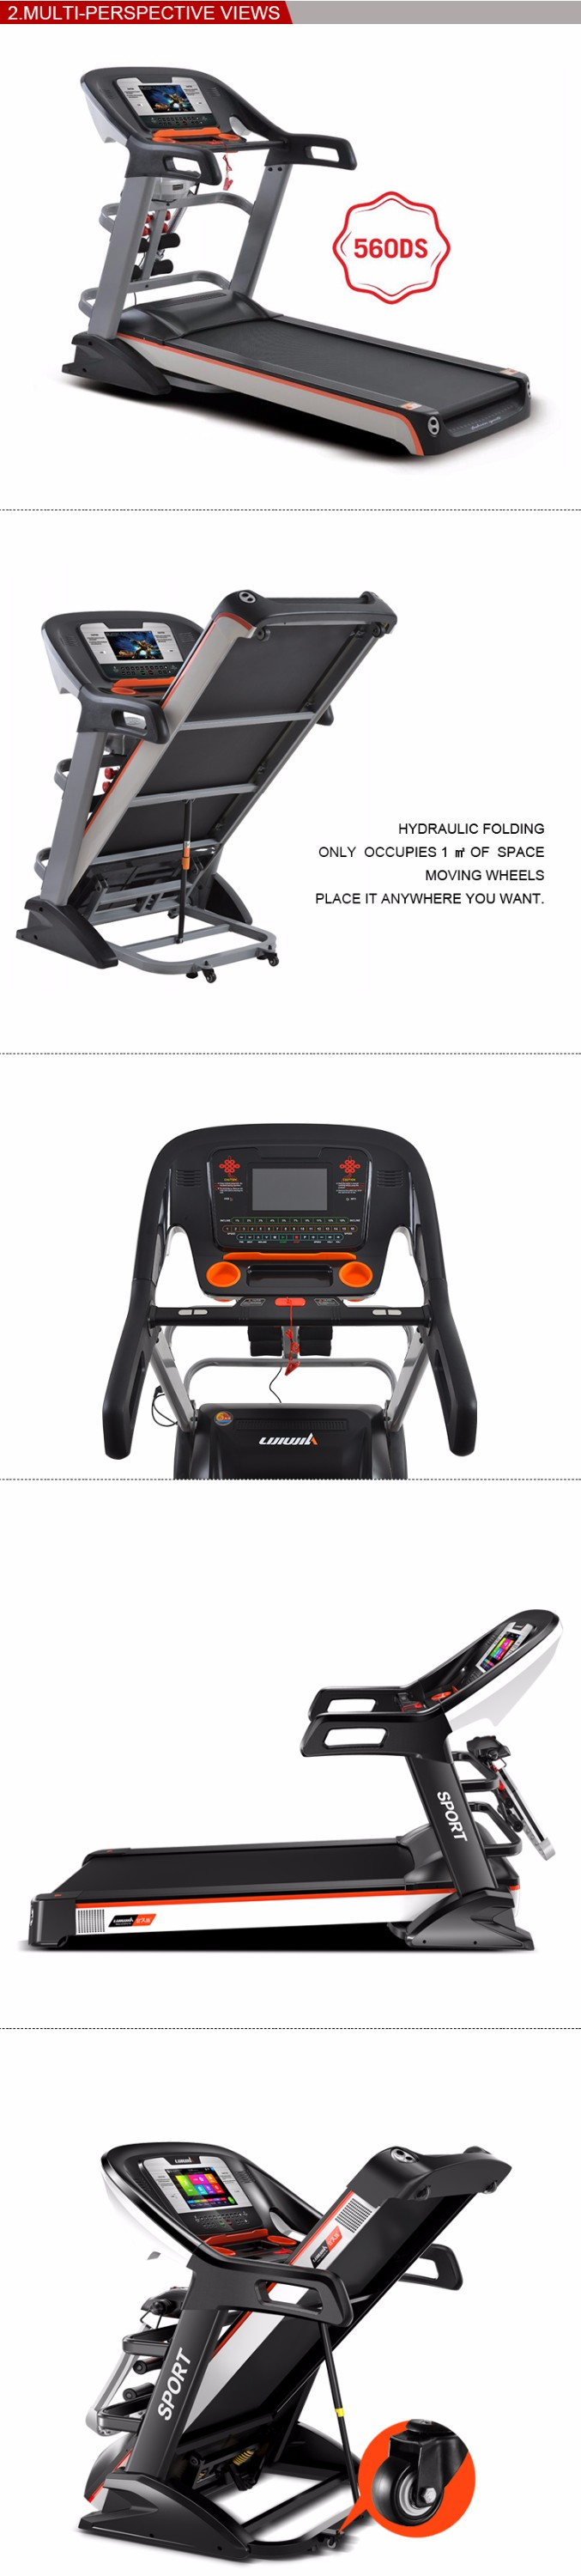 Fitness Exercise Equipment Curve Commercial Treadmill Ac